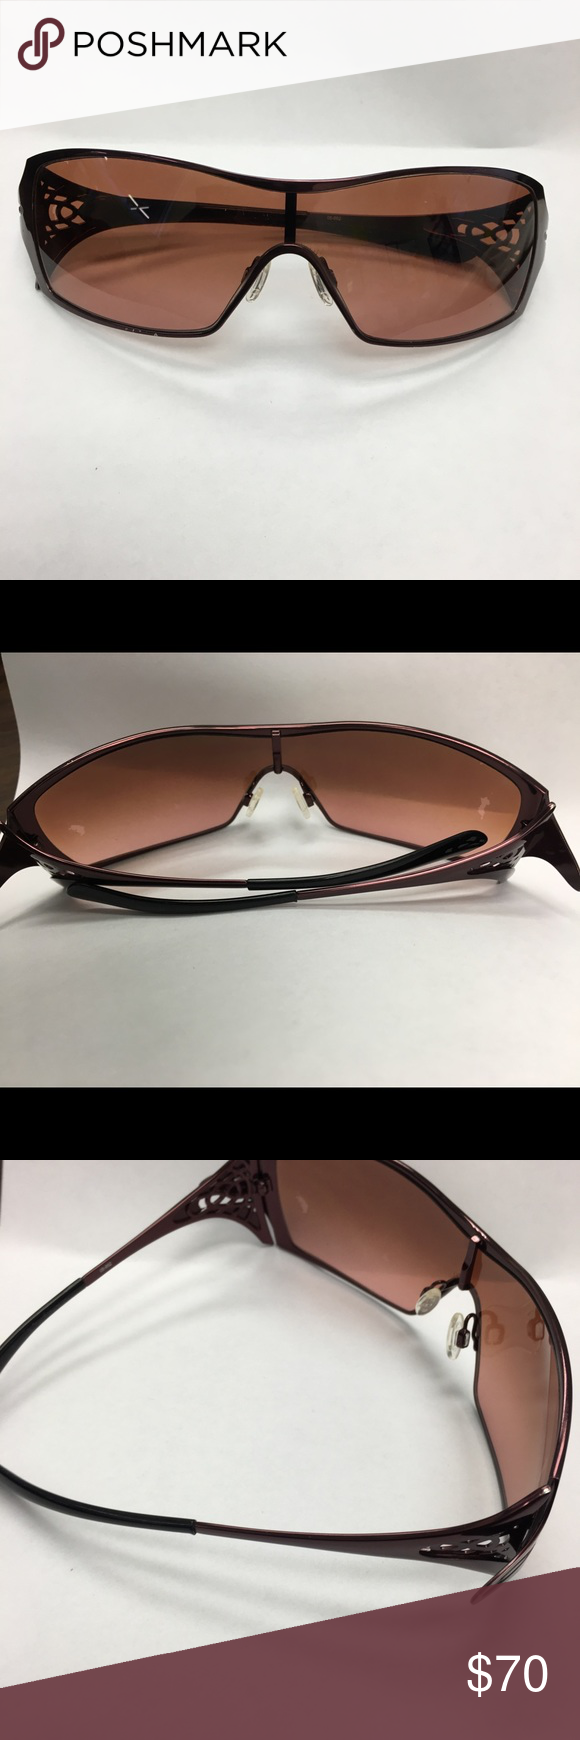 336a66e46a6a7 free shipping oakley liv polarized chocolate 4ed78 24c73  50% off metal women  oakley liv berry sunglasses frames are in good condition shows some